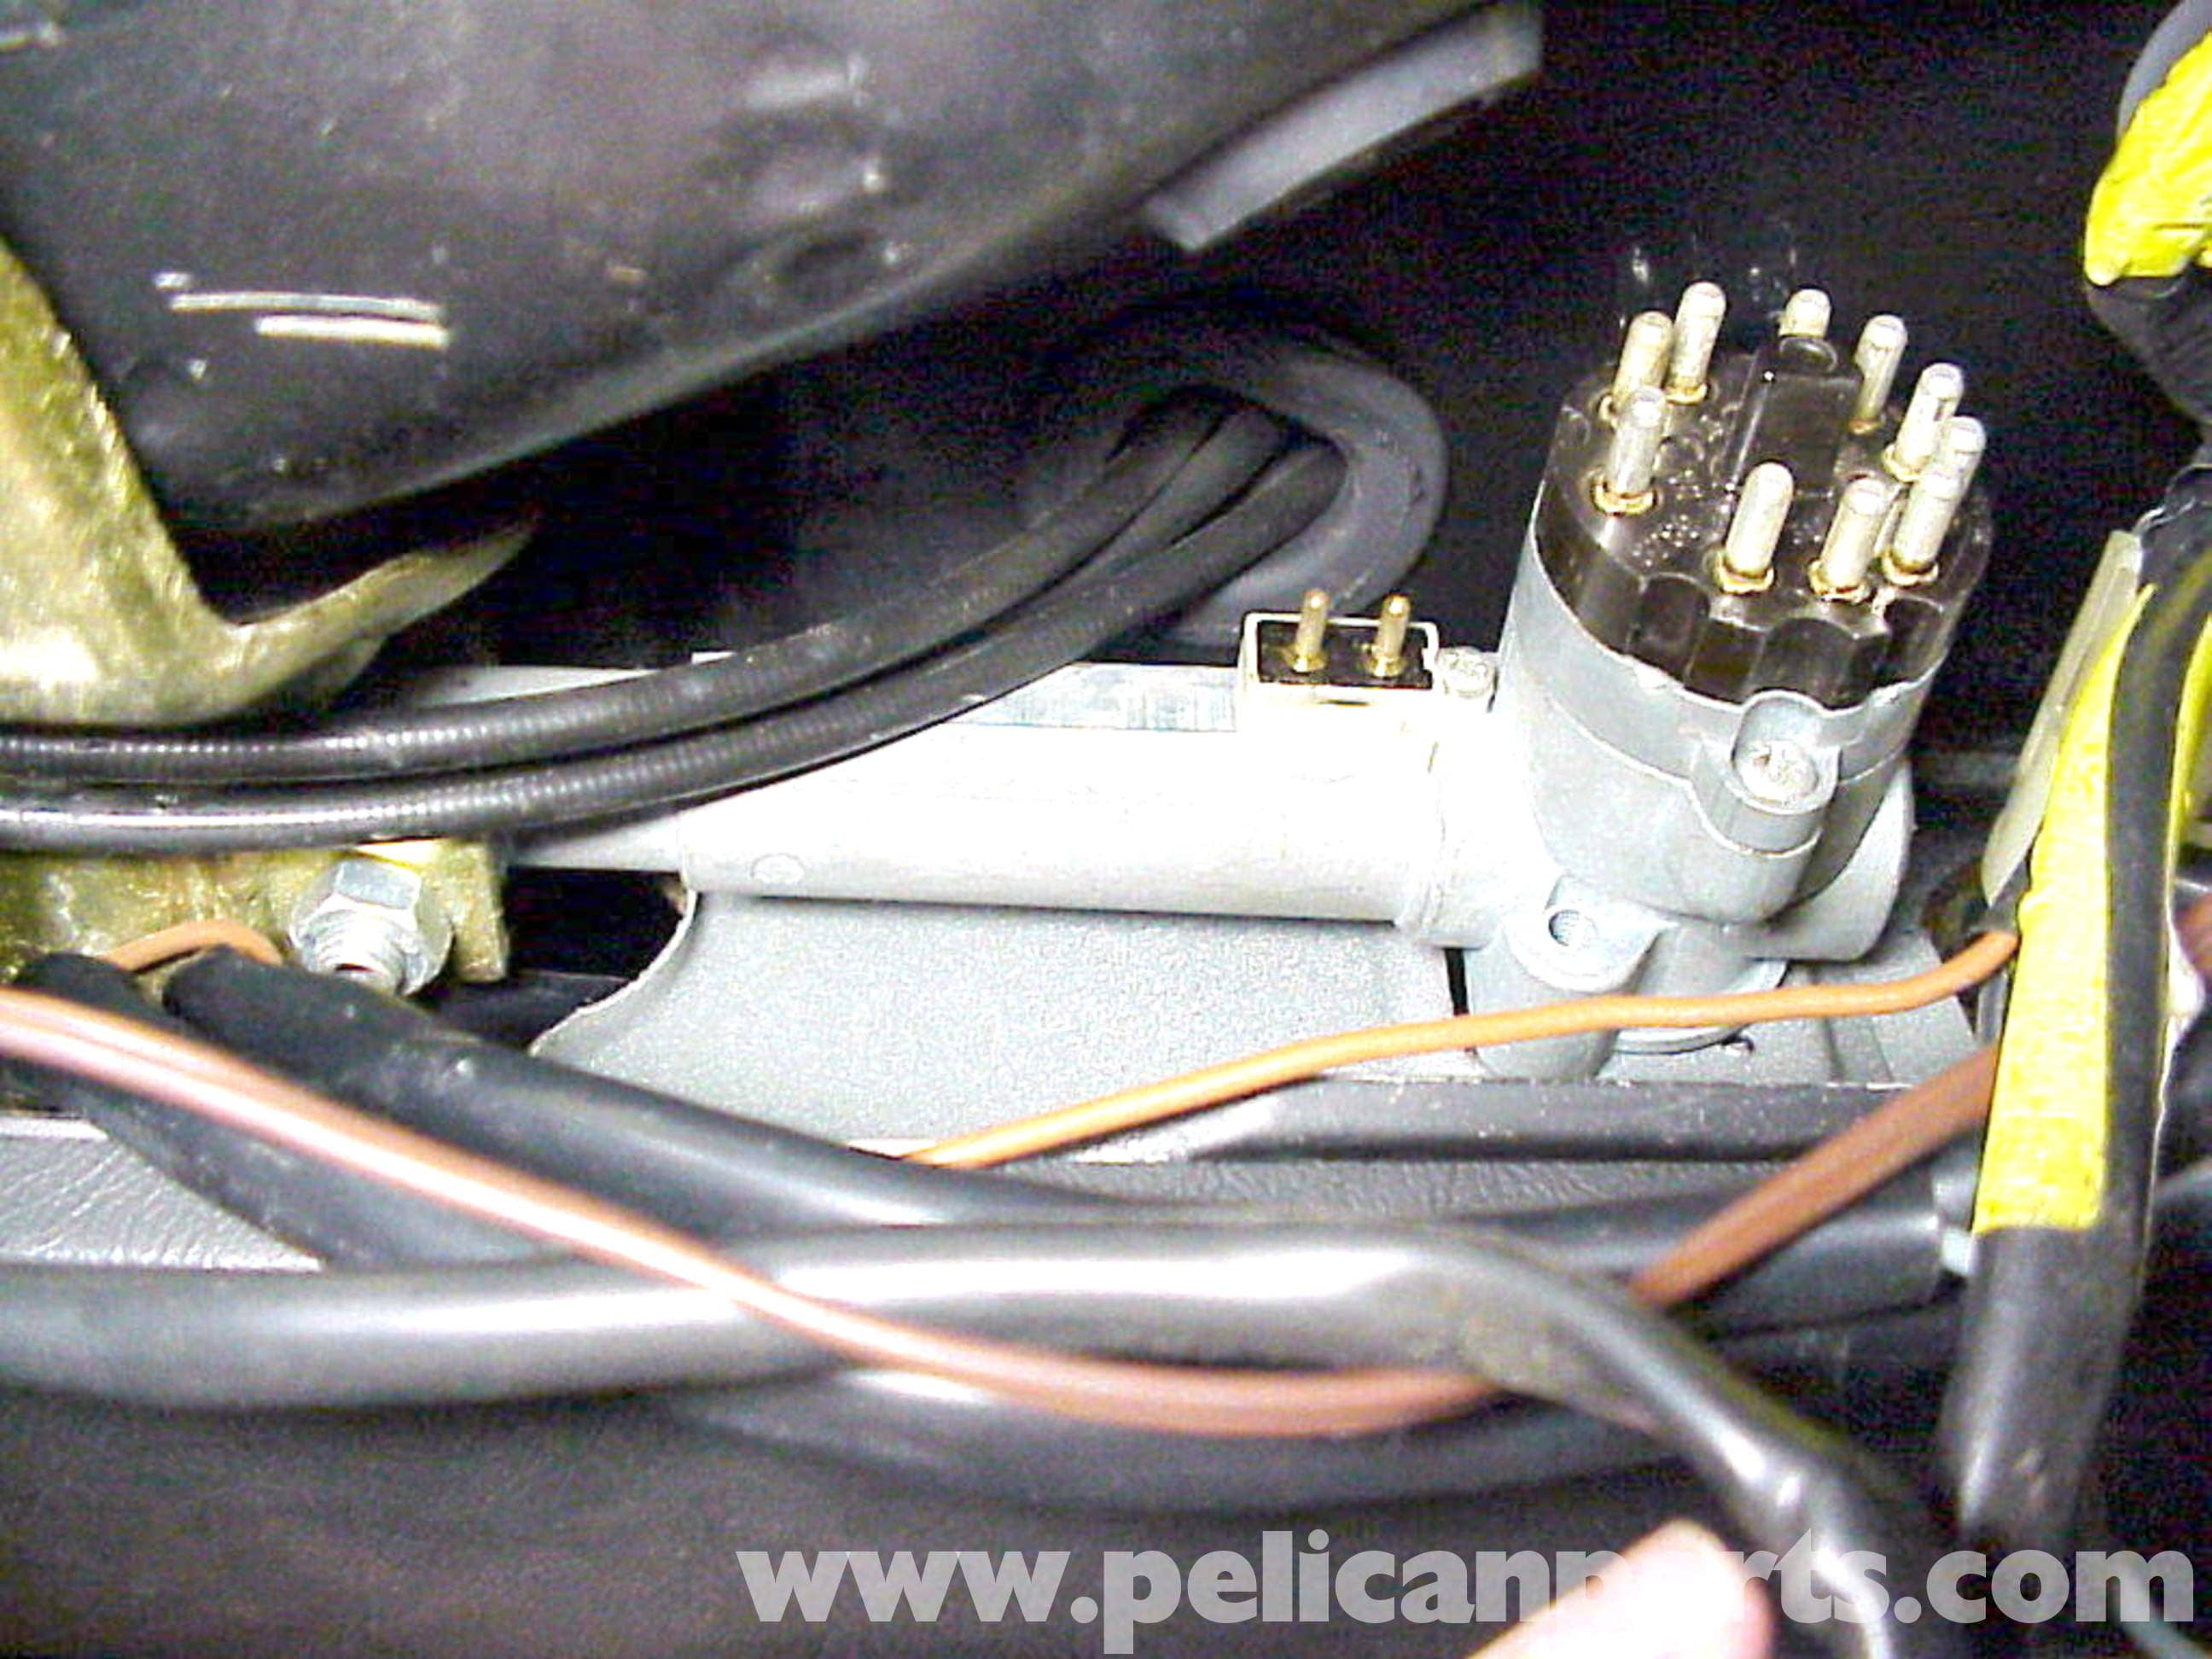 1985 porsche 911 wiring diagram 1985 image wiring porsche 911 ignition switch replacement 911 1965 89 930 on 1985 porsche 911 wiring diagram